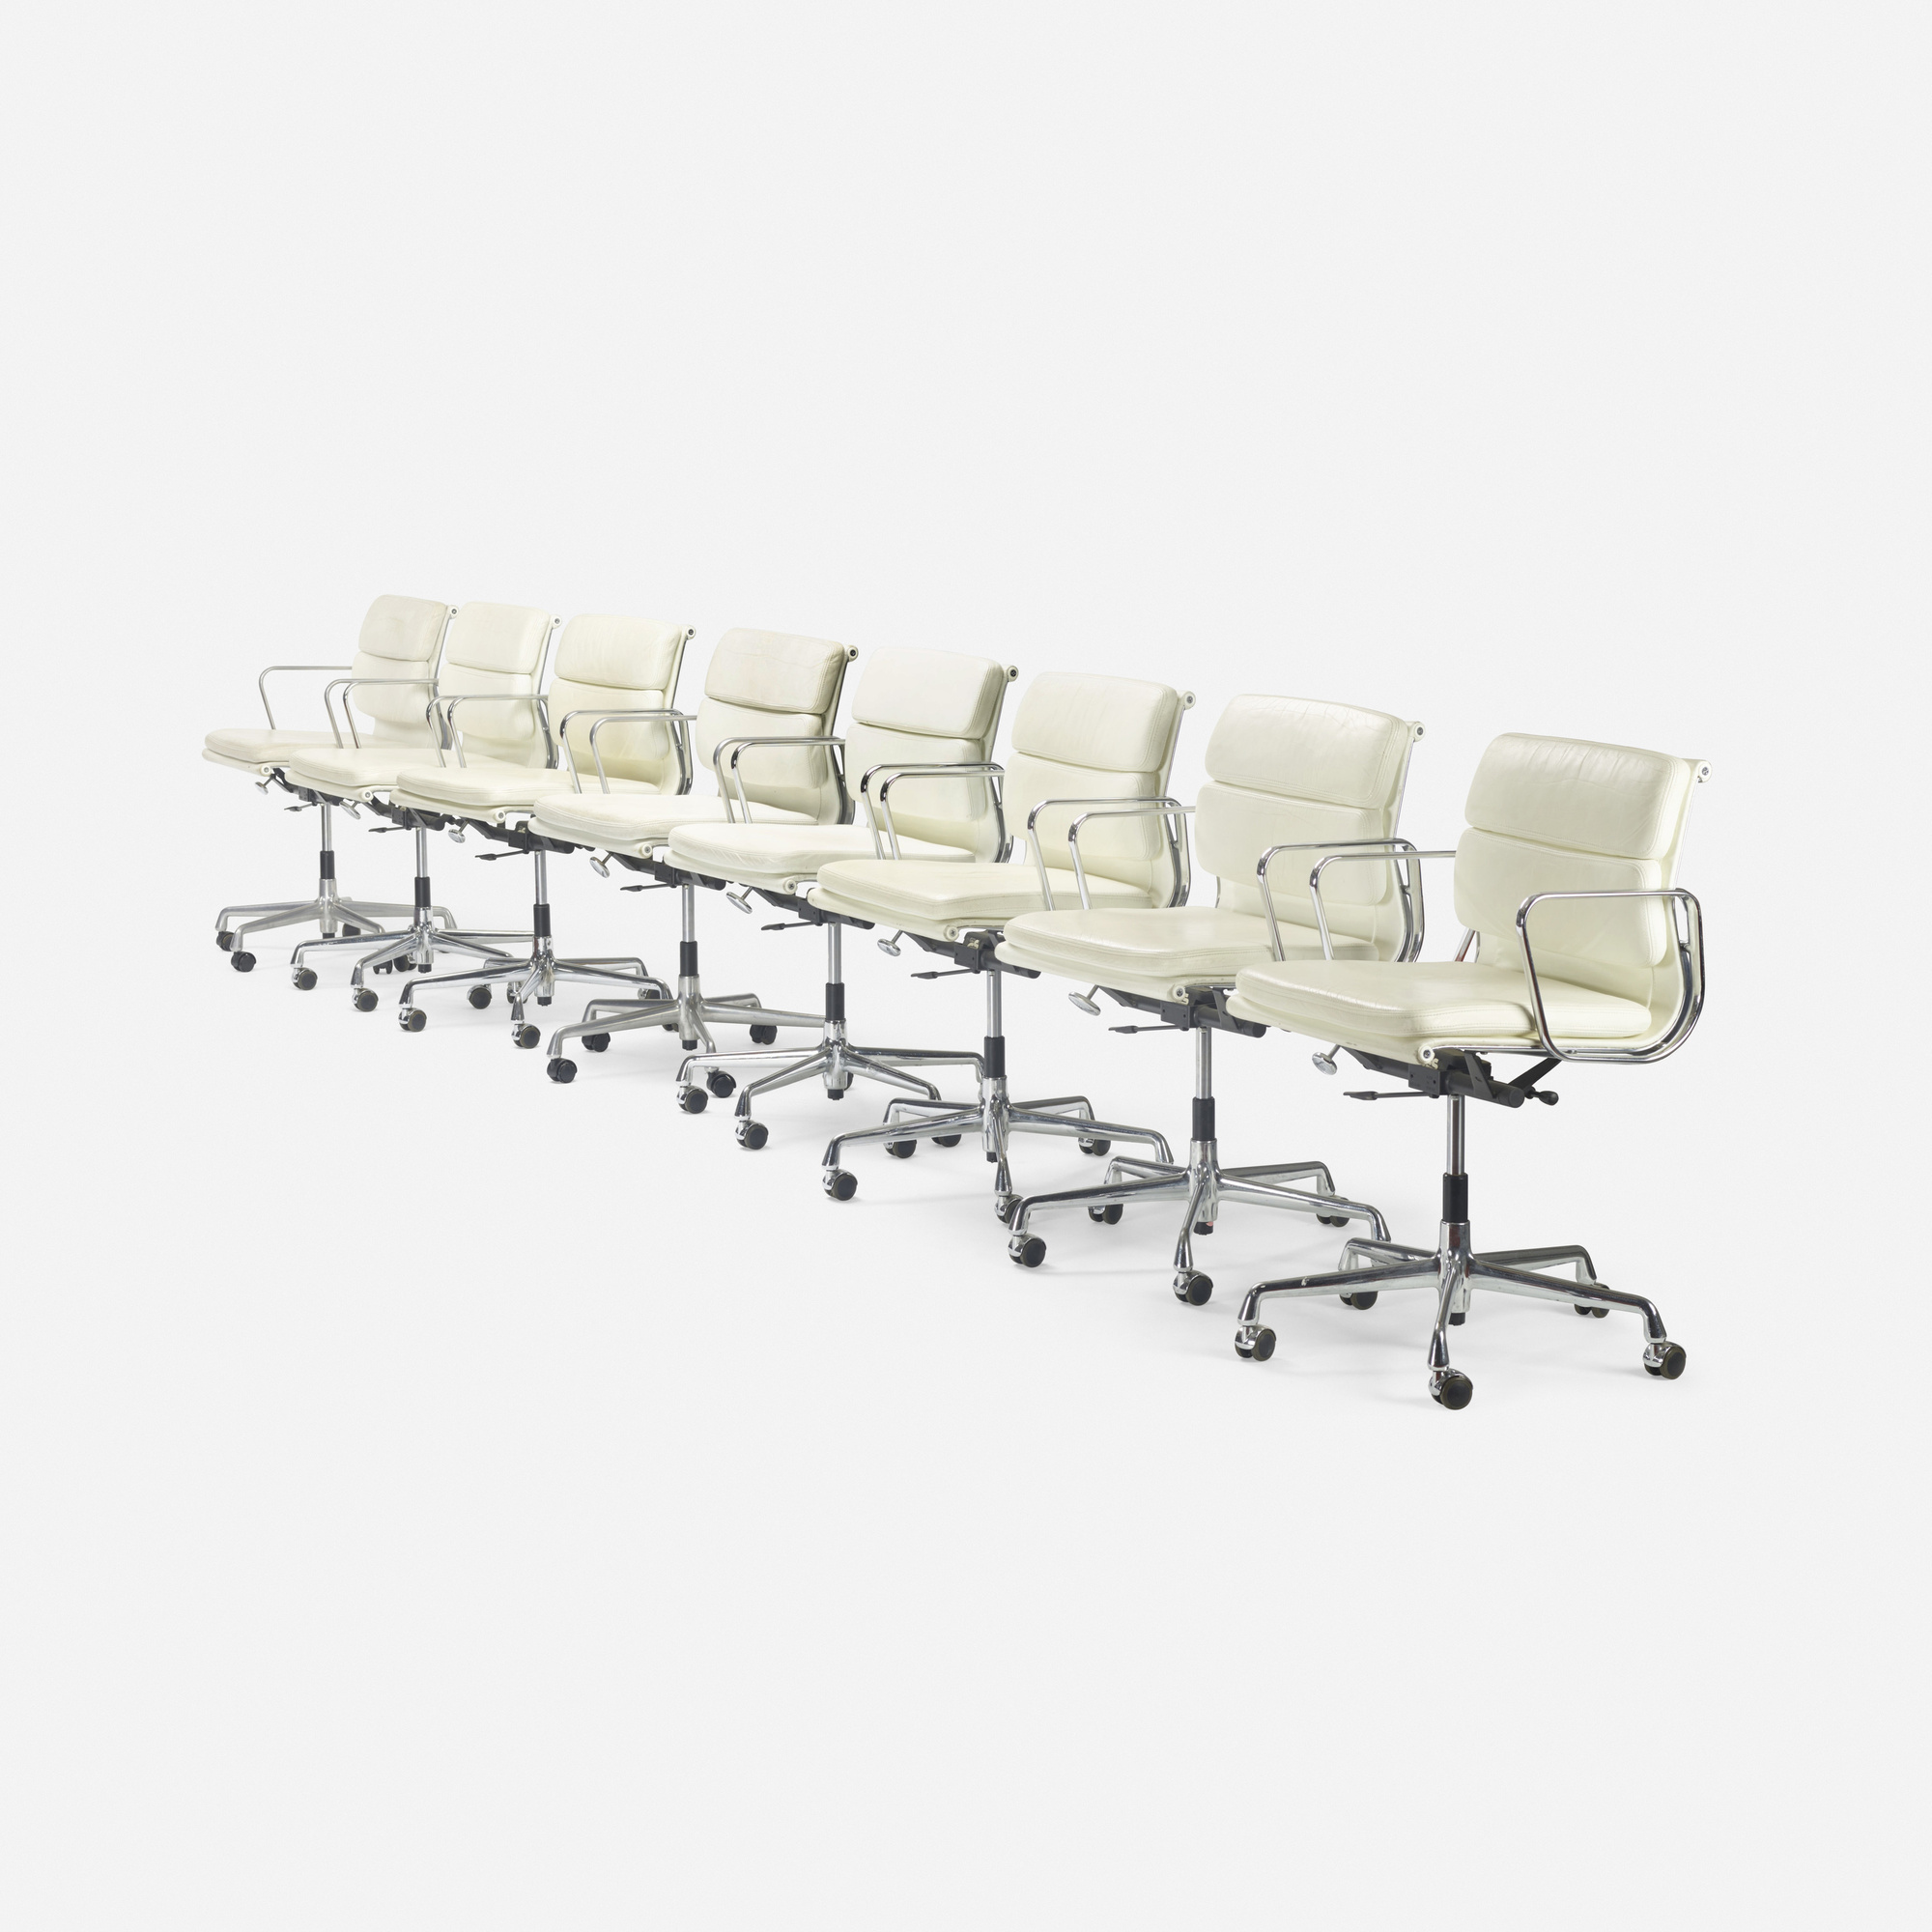 157: Charles and Ray Eames / Soft Pad chairs, set of eight (2 of 2)